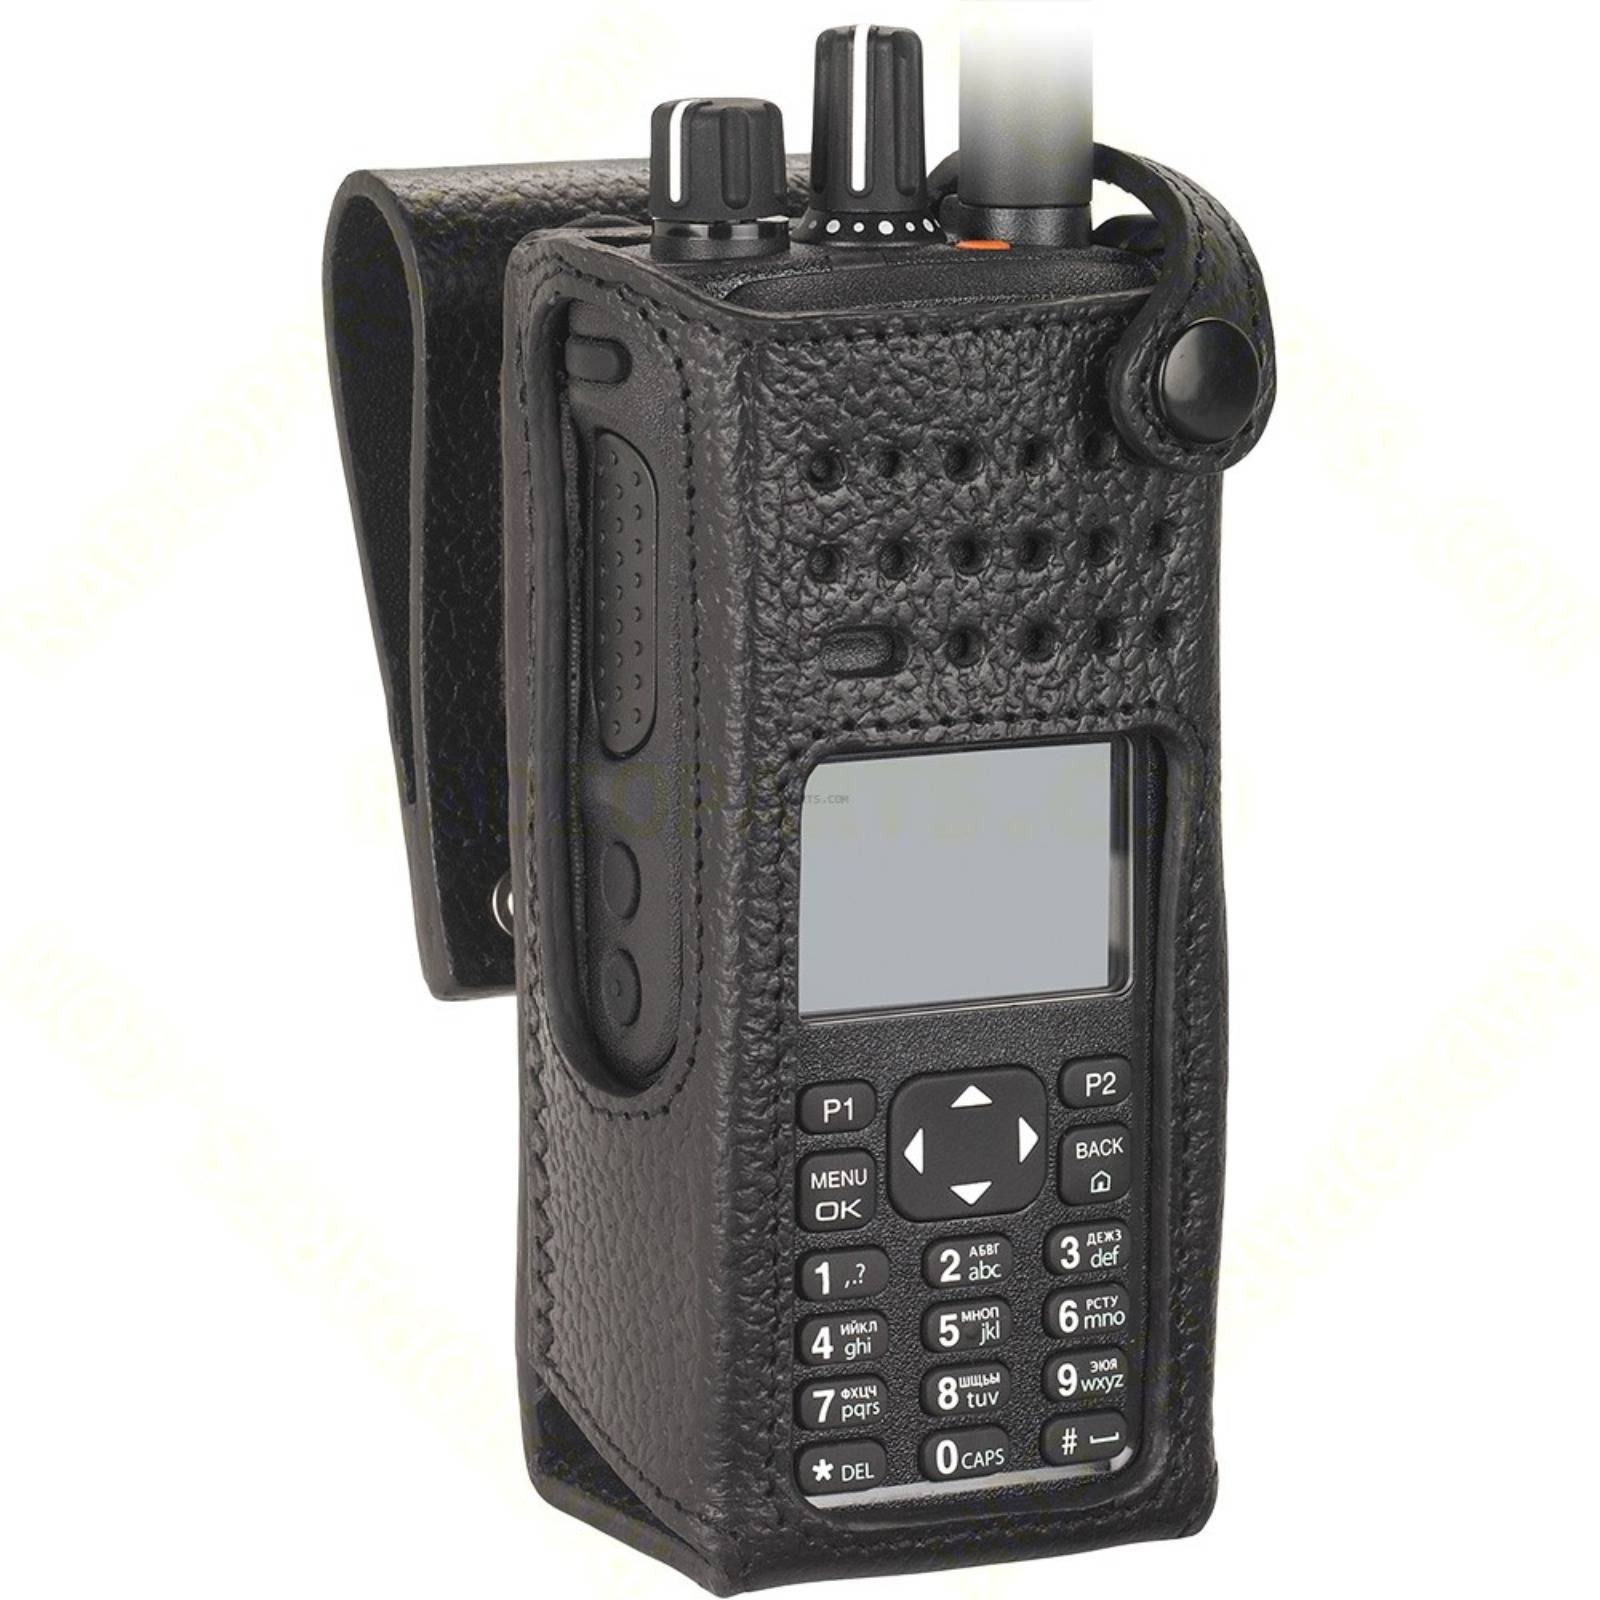 HARD LEATHER CARRY CASE DISPLAY RADIO - DP4000 SERIES